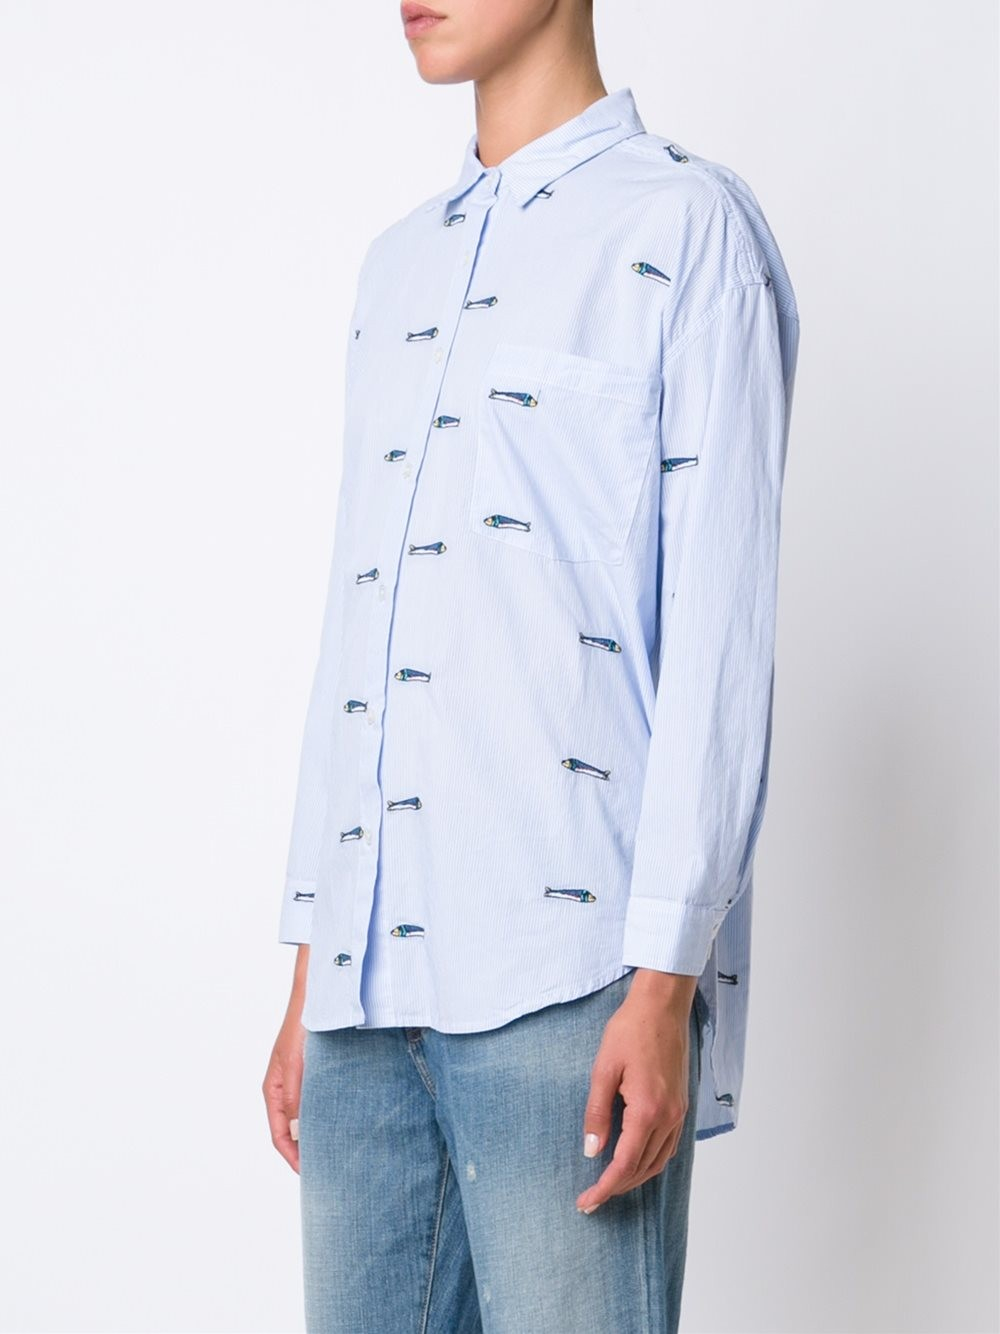 Lyst sea embroidered fish shirt in brown for Embroidered fishing shirts